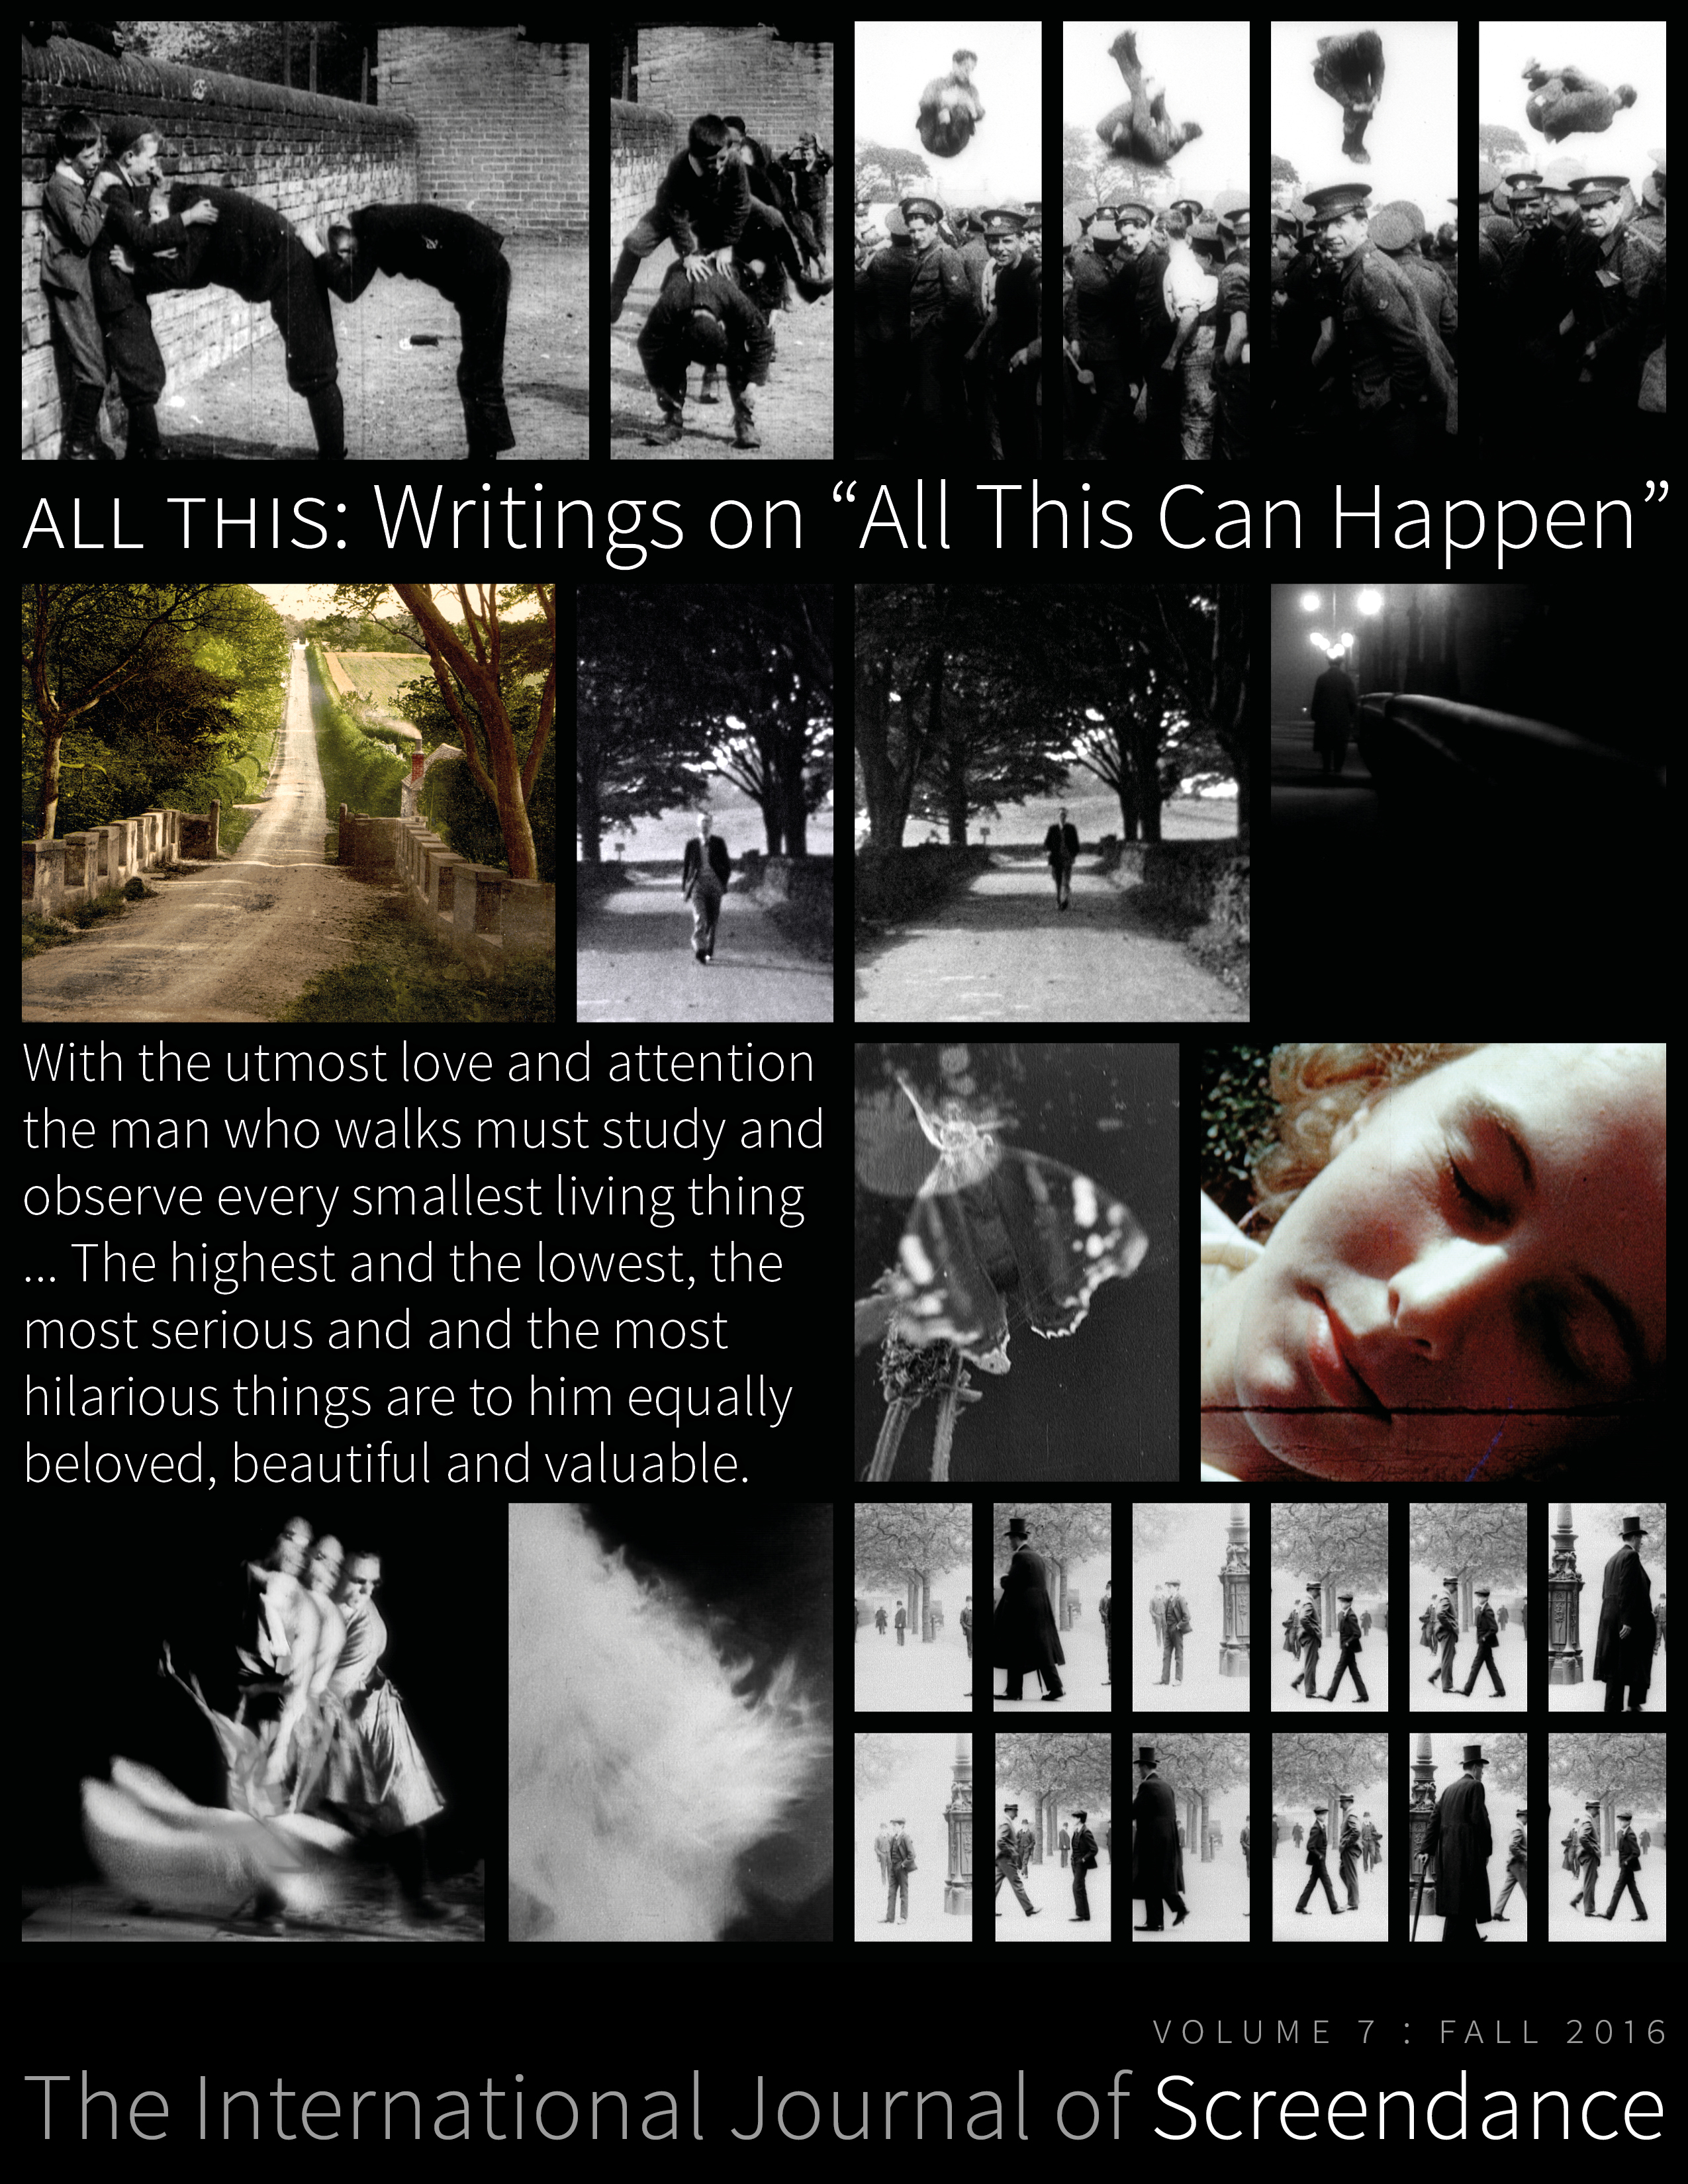 All This: Writings on All This Can Happen